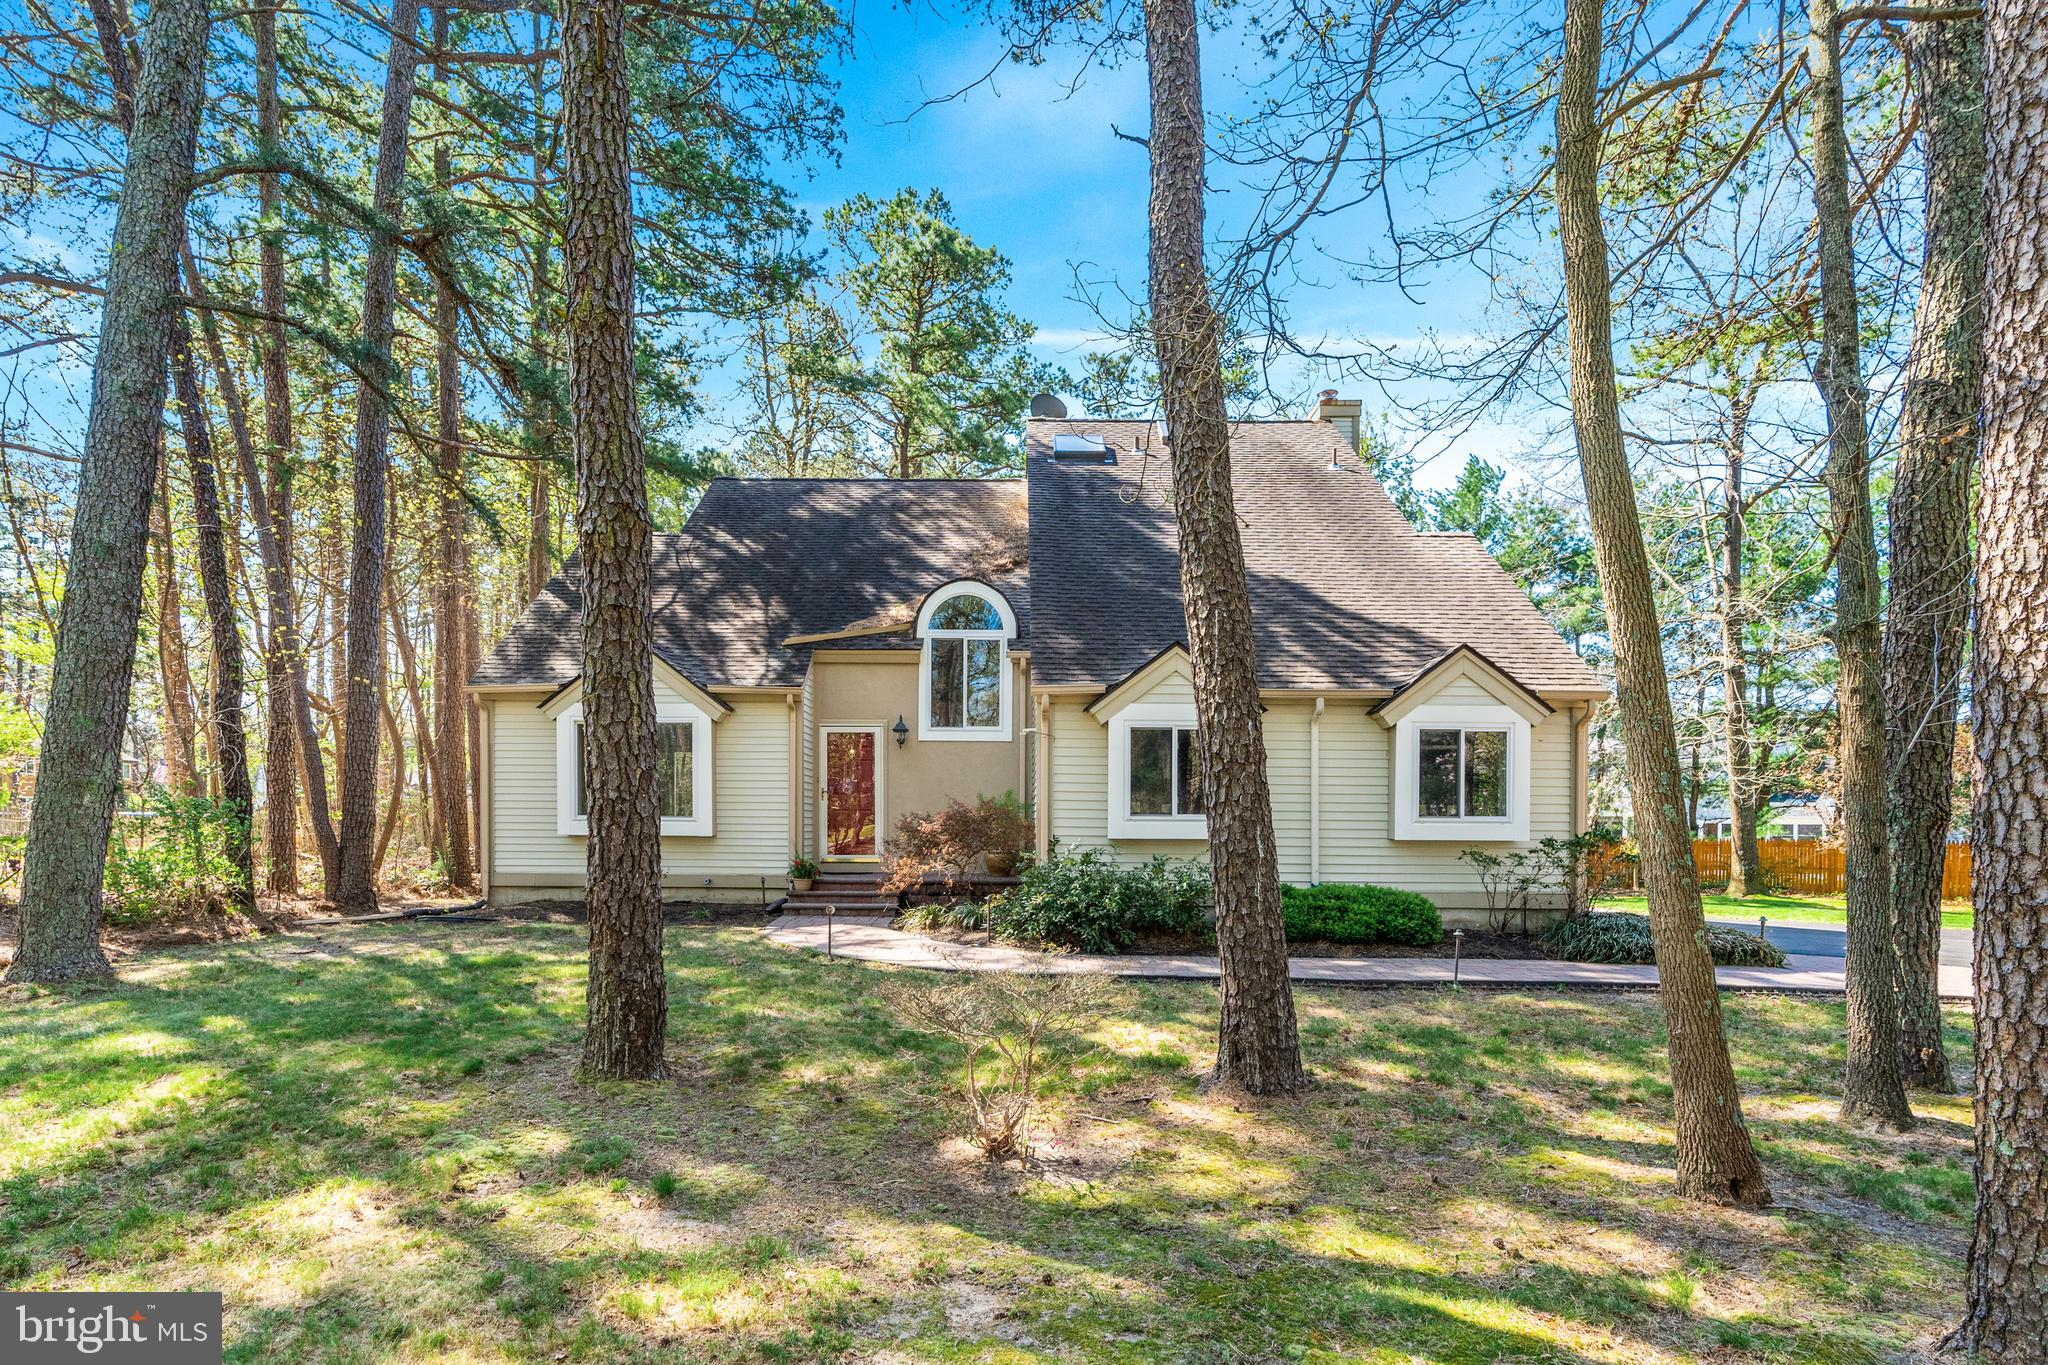 This picturesque transitional/contemporary home is comfortably nestled in the tall trees within a friendly neighborhood of similar homes.  The home is so approachable and inviting, welcoming you from the moment you pull into the driveway.  There's a deep setback from the street and that means you'll enjoy privacy which also extends into the rear yard.  There's a large custom, wrap around deck off the rear corner of the home and a short staircase leads to a ground level deck with a custom paver firepit ready for you to enjoy long evenings entertaining and relaxing.  The home also includes a full custom cedar storage shed and ample grassy areas for the children and pets to play. A paved driveway leads to a 2 car side turned garage, so you'll never have to worry that there's enough parking for family and guests alike.  A EP Henry paver walkway and front stoop invite you to come inside and experience the comfortable and open floor plan.  High ceilings and hardwood flooring receive lots of natural light from the abundance of well positioned, newer windows, throughout the home.  Everything has been freshly painted in soft on trend colors while white painted wood trims add a fresh finish. The stair railings were recently upgraded with wood railings and decorative iron spindles. The kitchen is a real beauty with wood cabinetry, a farmhouse sink,  granite countertops, stainless steel appliances (Bosch Range and Dishwasher), stainless vent hood  and a decorative marble tiled backsplash for the perfect finishing touch.  While you're here, make sure to take notice of the pull  out pantry drawers, deep drawers for pots &  lazy Susan. Recessed and pendant lighting assure you'll have a well-lit workspace .   One of the greatest features of the home is the adjoining Family Room with  hardwood flooring, a cozy gas fireplace and a flexible layout for use as combination casual Dining/Family Room.  From here you can easily move outdoors & extend the party space to the  deck and yard. T